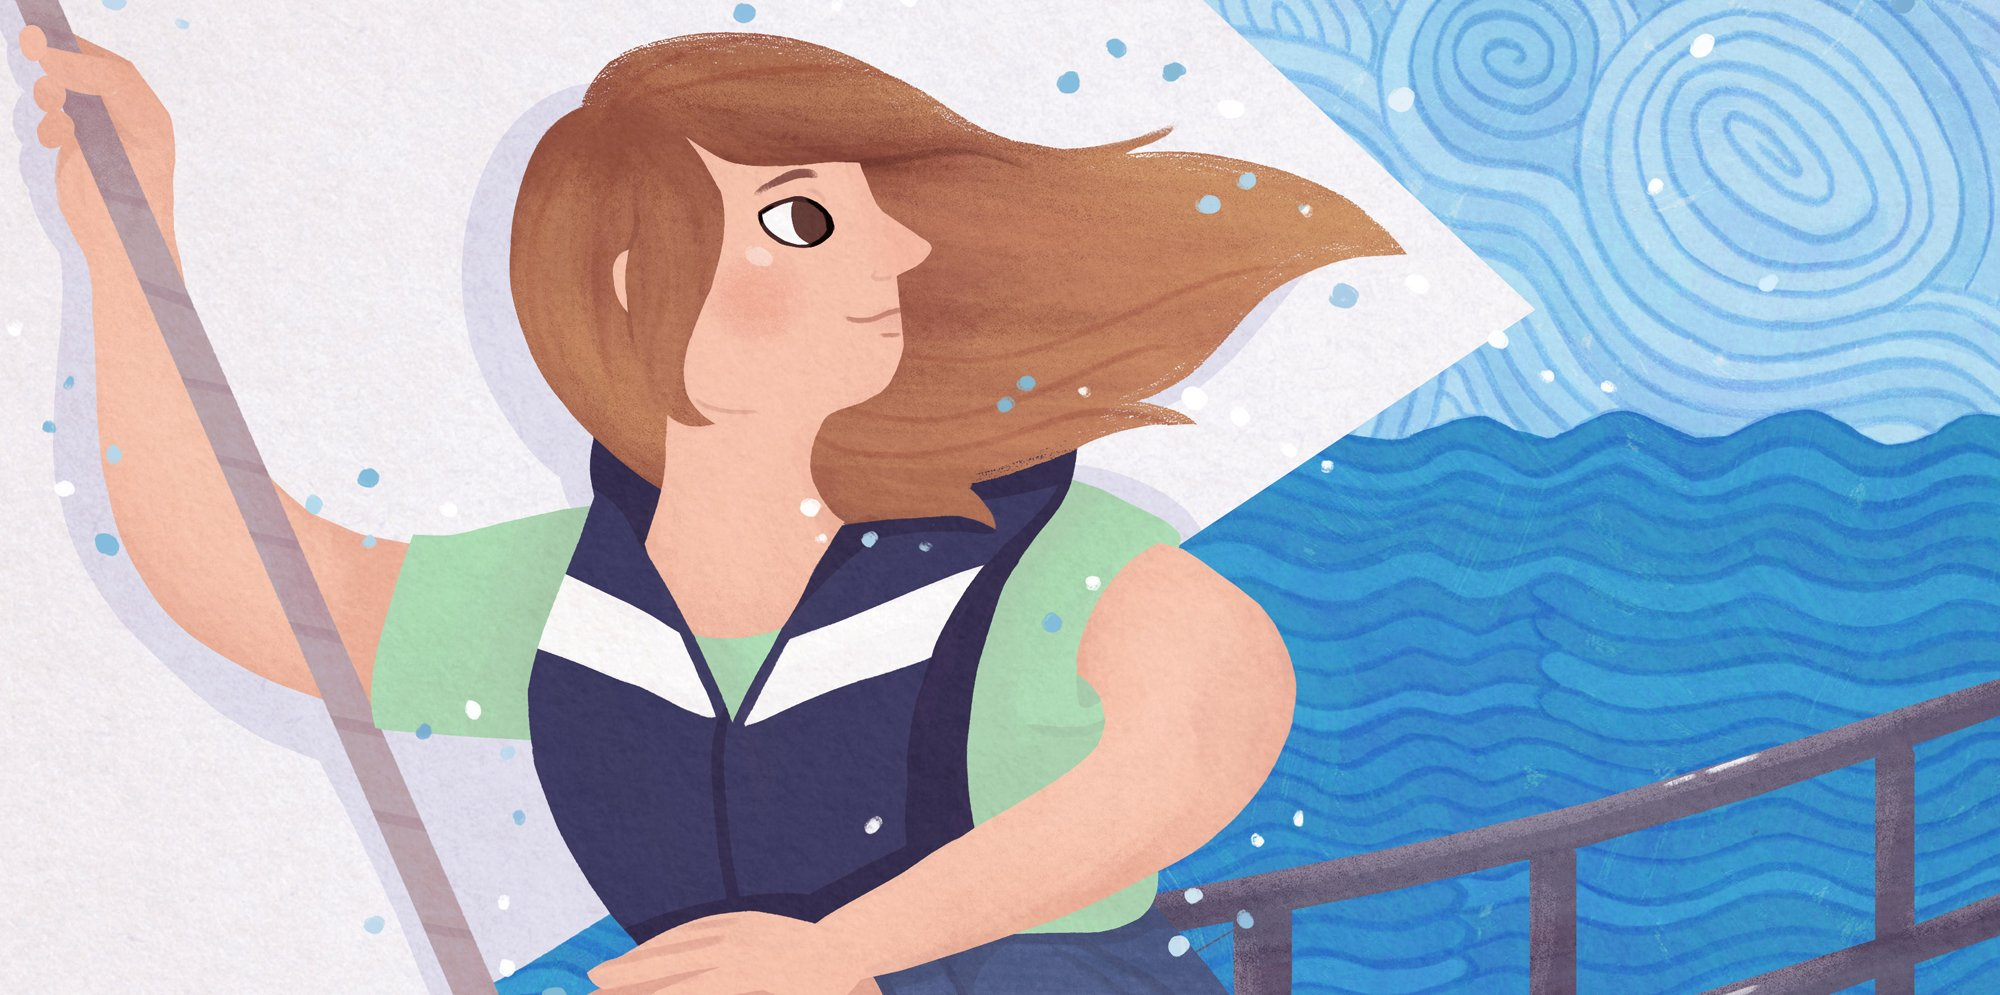 An illustration of a girl on a boat in the sea. She is looking behind her. She looks confident and capable.